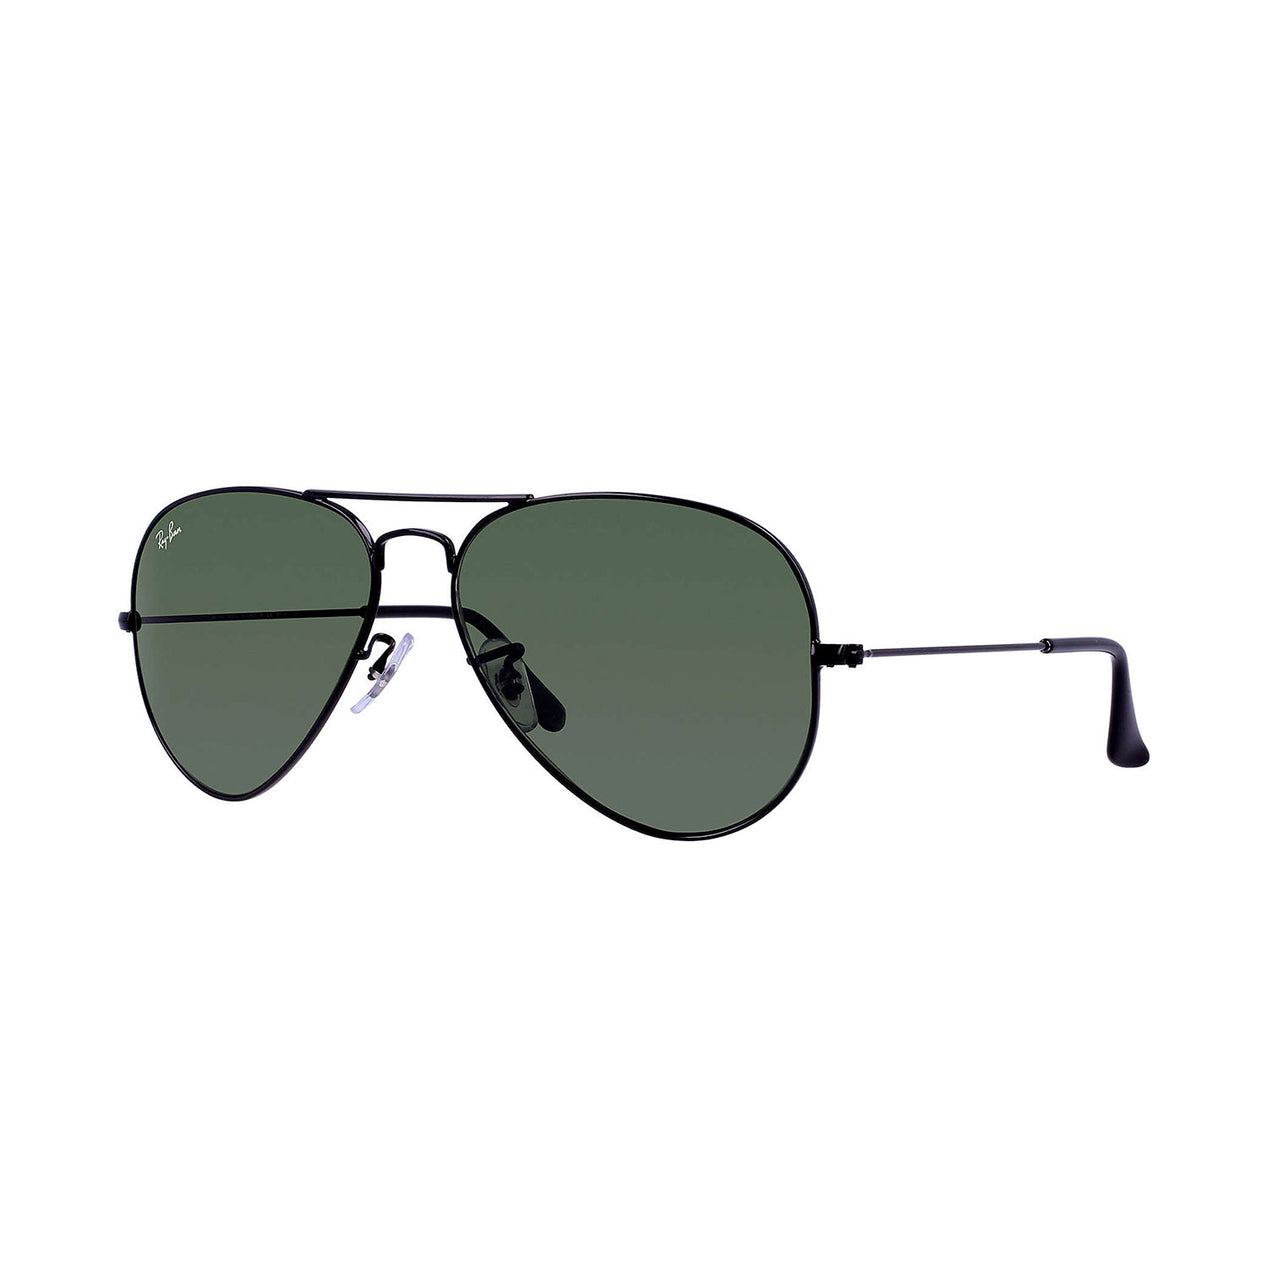 353198a3efe Ray Ban Aviator Classic - Black Frame - Green Classic G-15 Lens ...